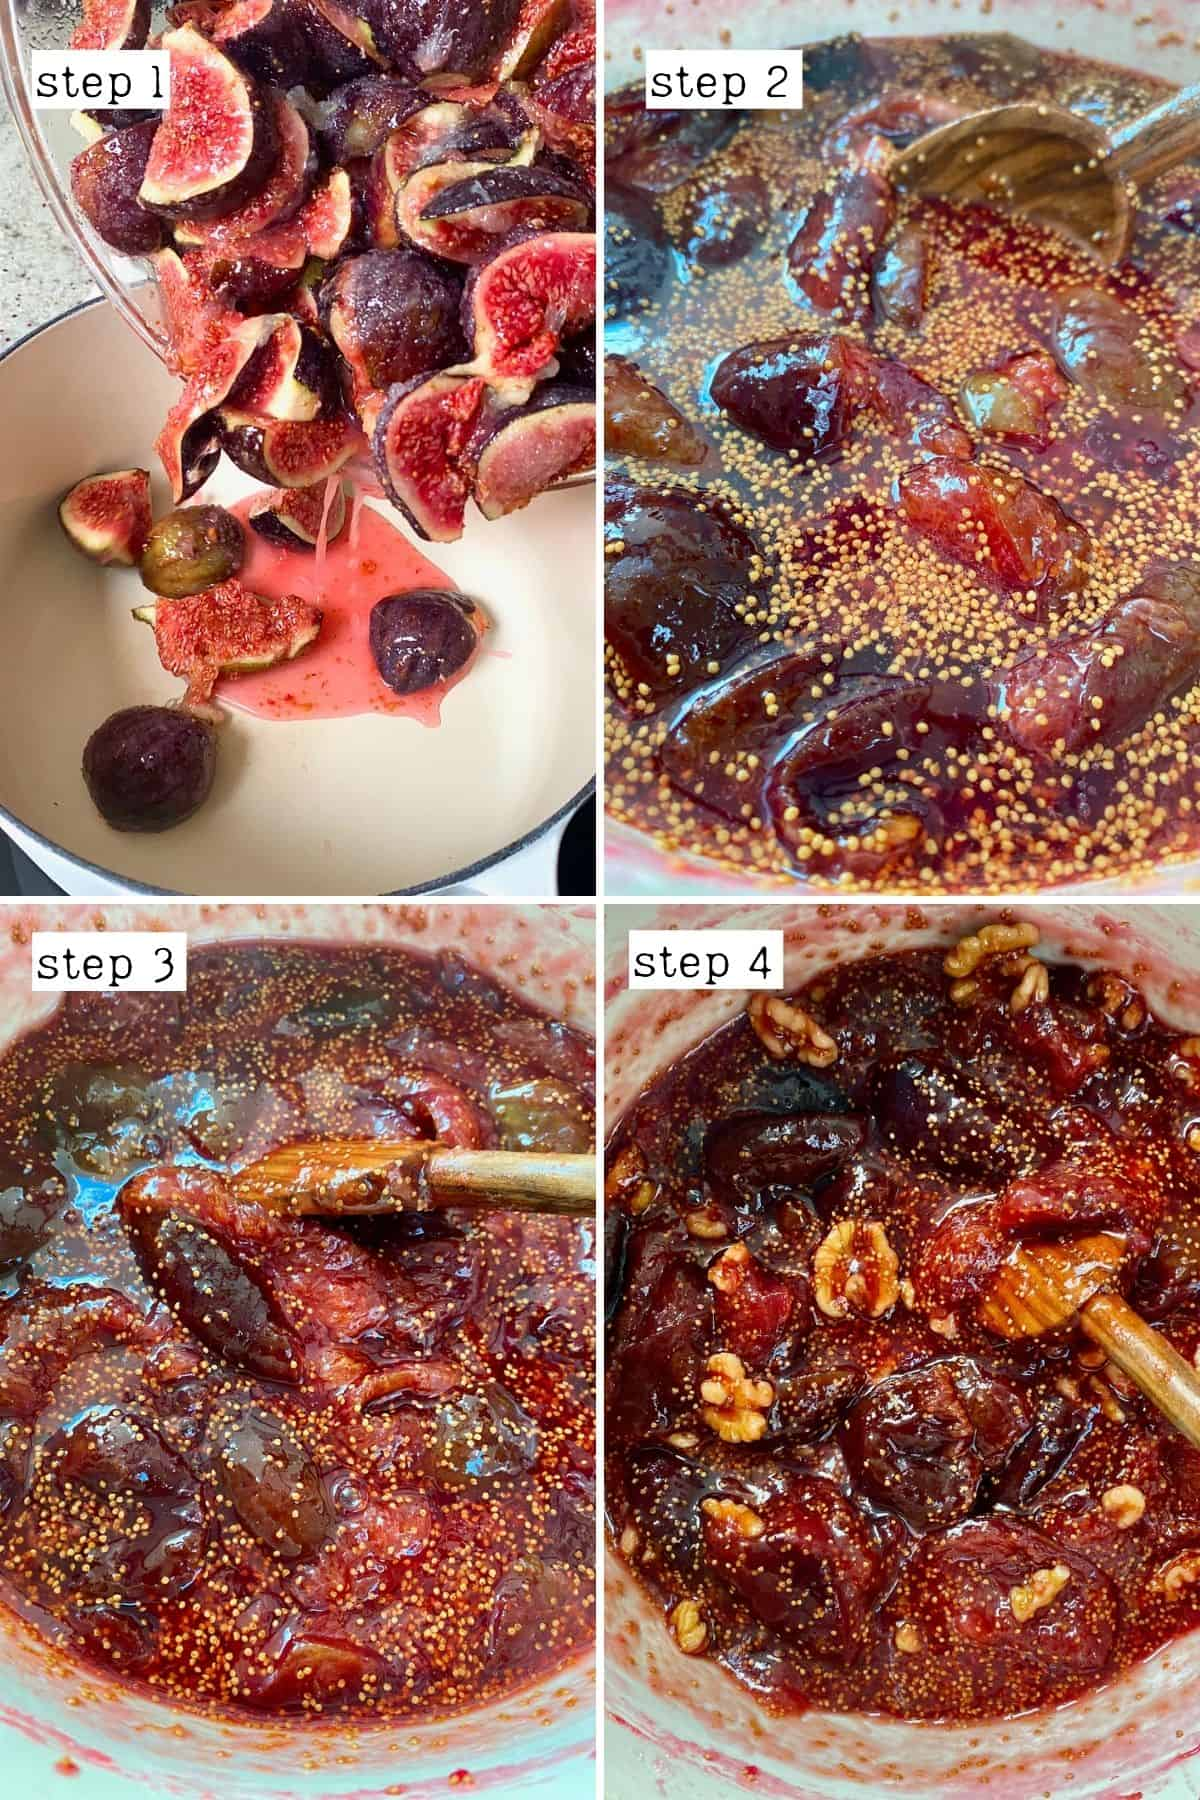 Steps for preparing fig jam with walnuts